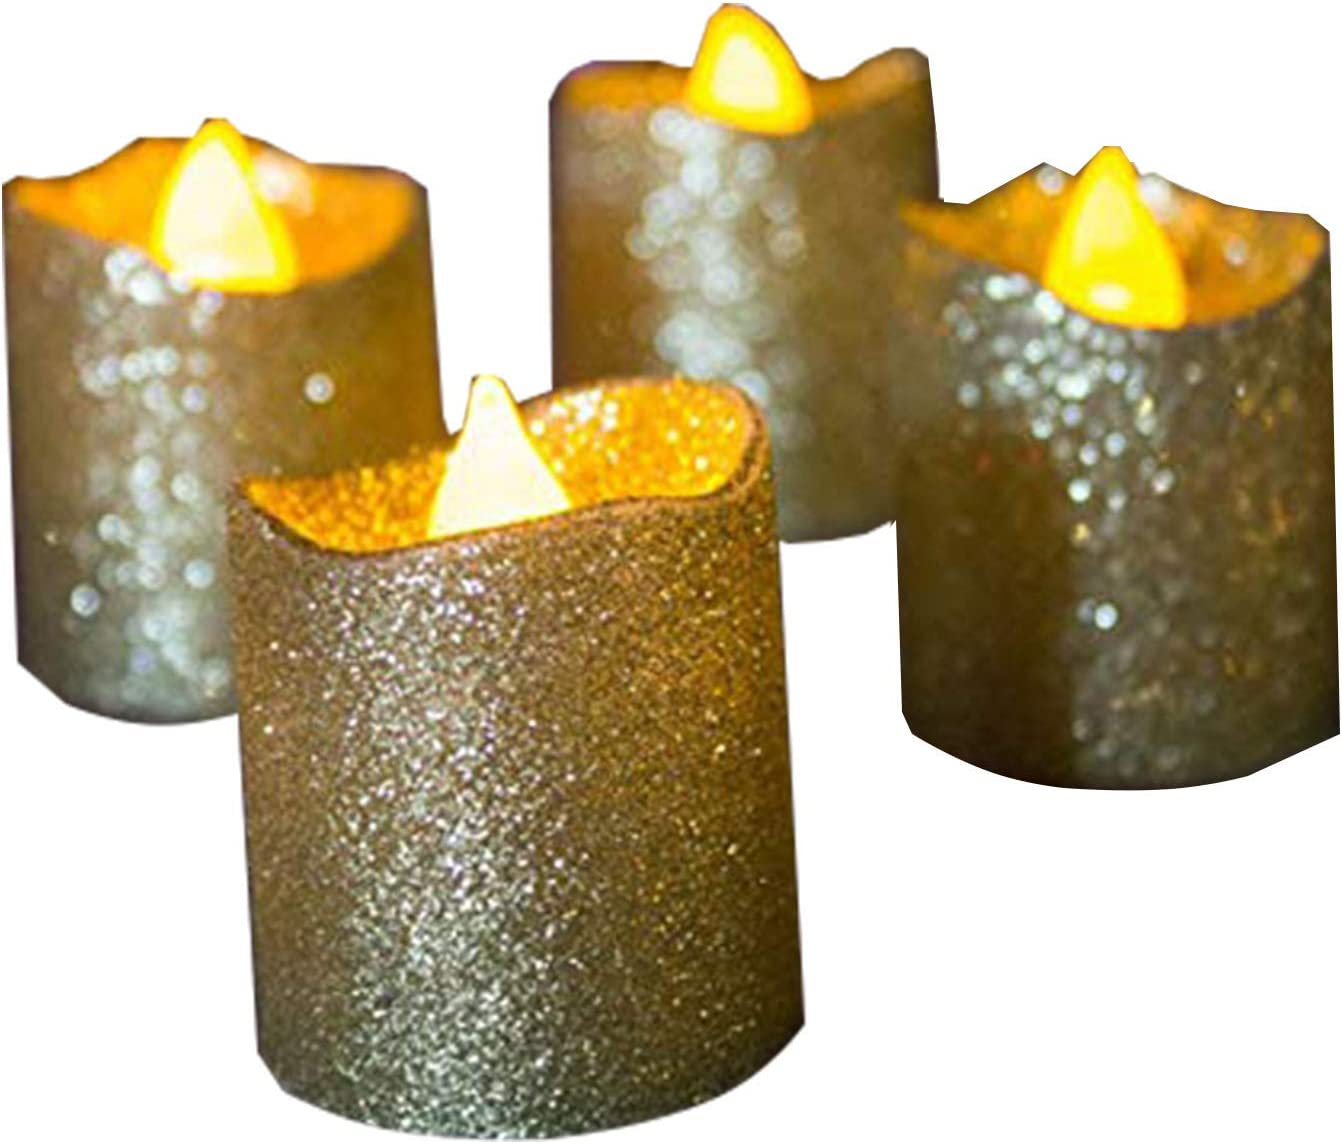 Gold Flameless Votive Candles,24 Pack Battery Operated Gold Glitter Flickering Fake LED Tea Lights for Wedding Centerpieces,Table,Anniversary,Outdoor,Christmas Decorations